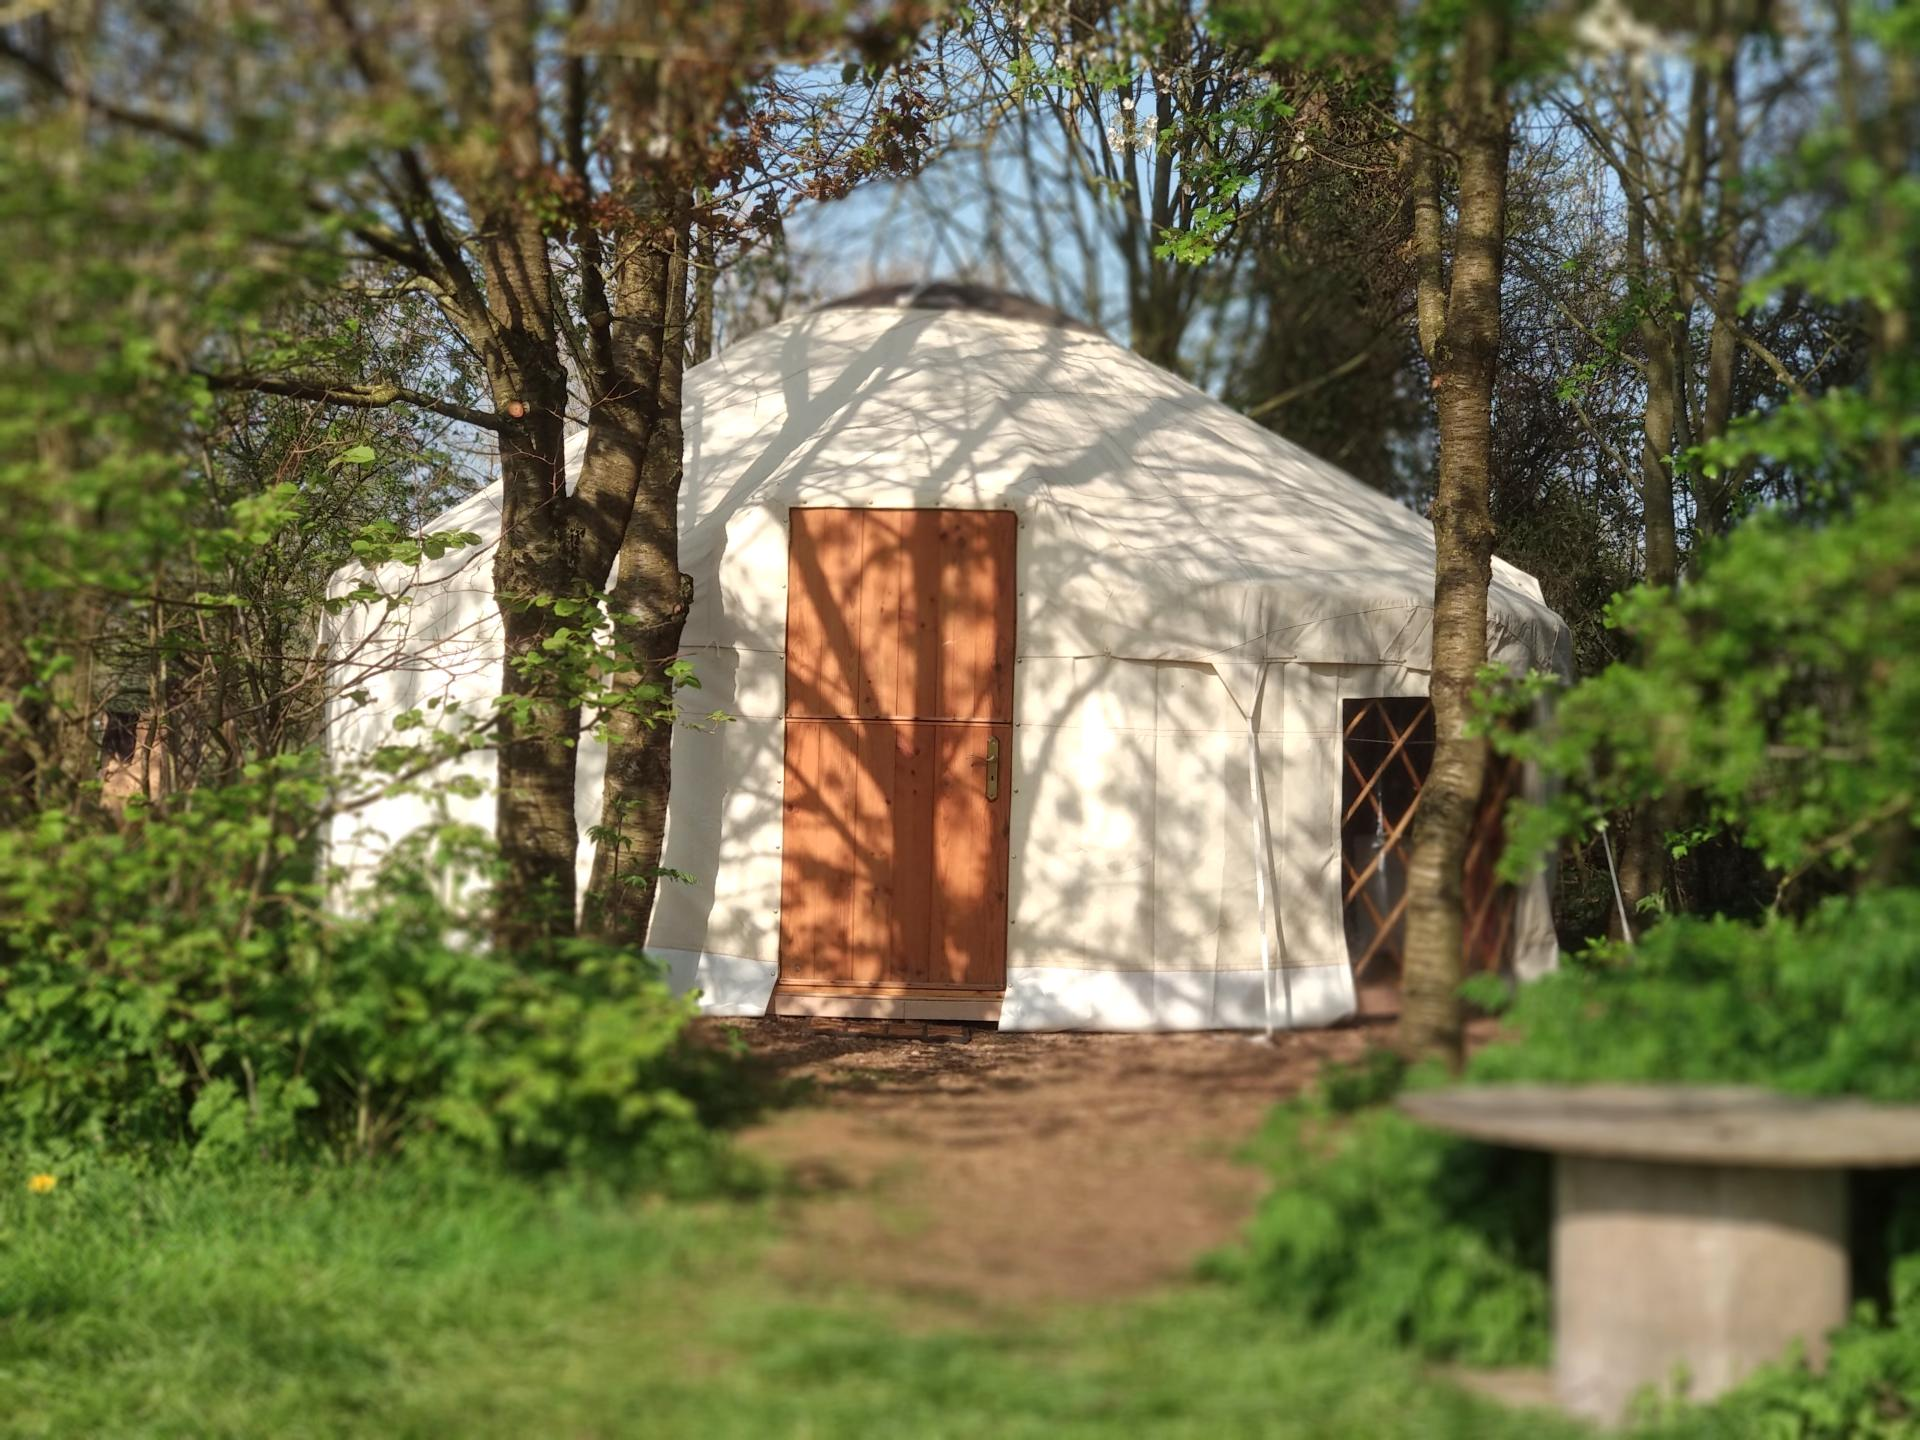 Our woodland yurt nestled amongst trees